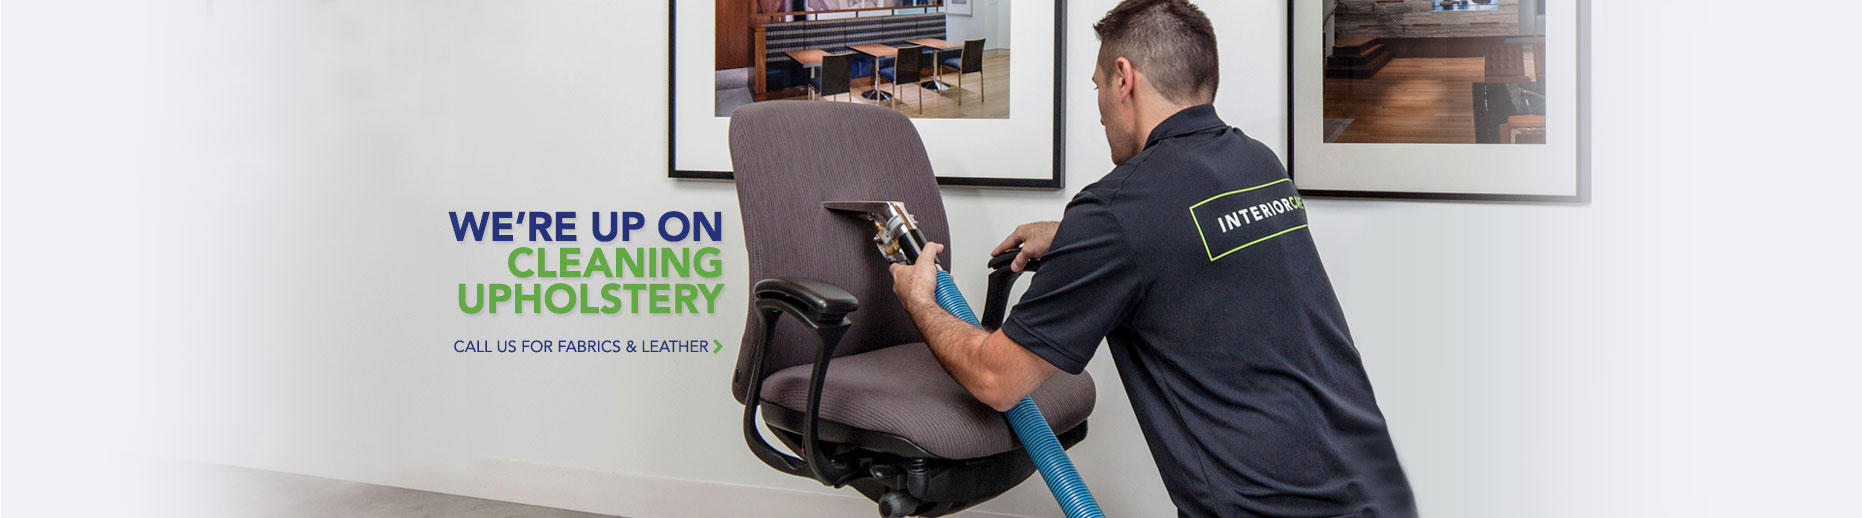 IC_Home_Anchor_Commercial_Upholstery_Cleaning